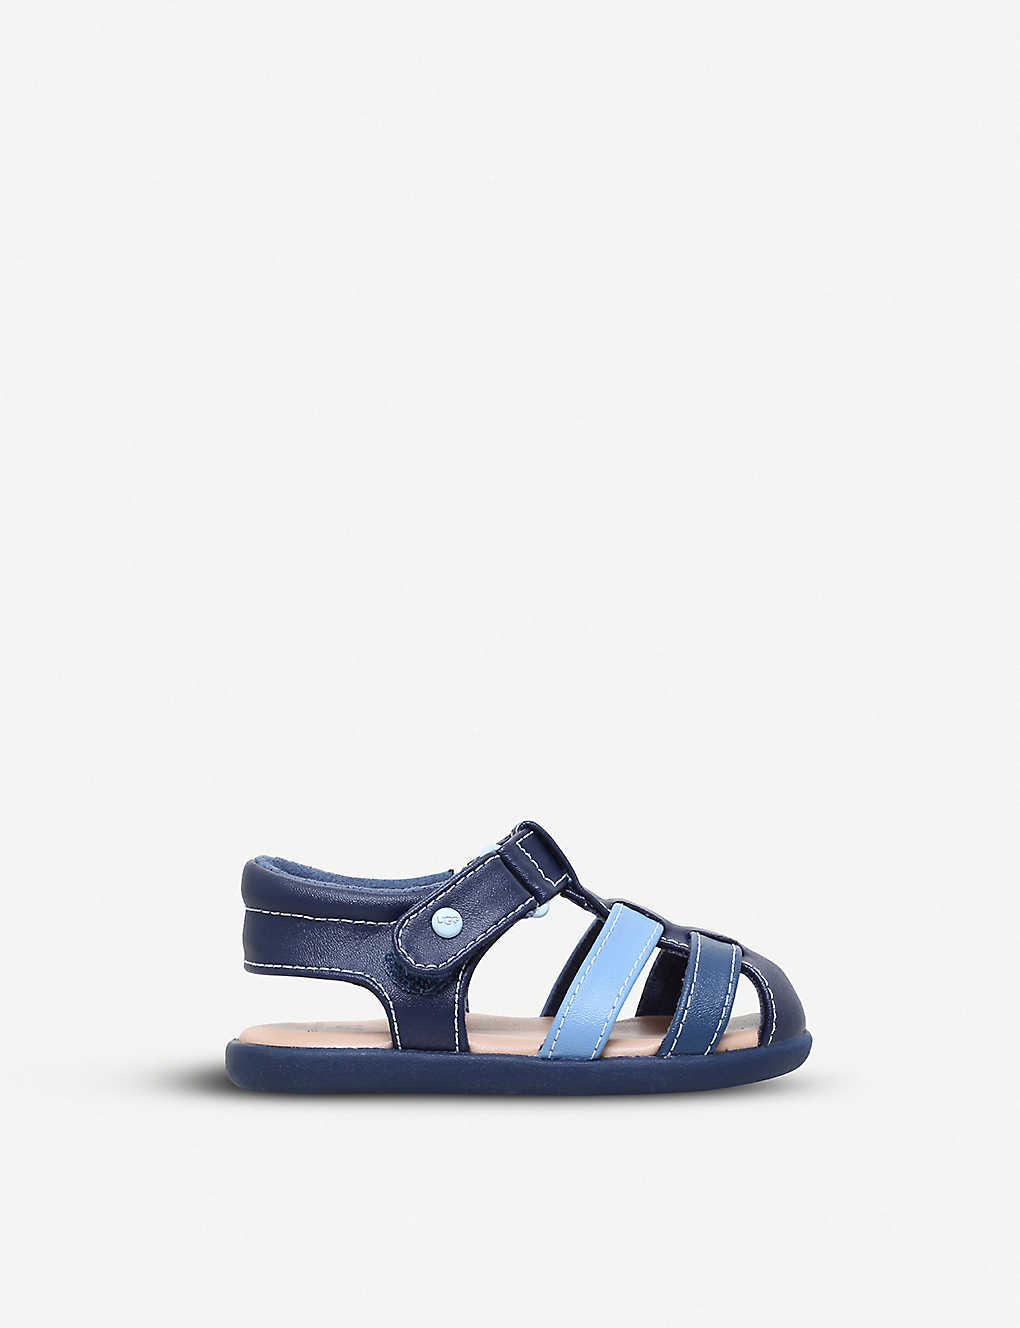 434f311b8b2 Kolding leather sandals 6 months-3 years